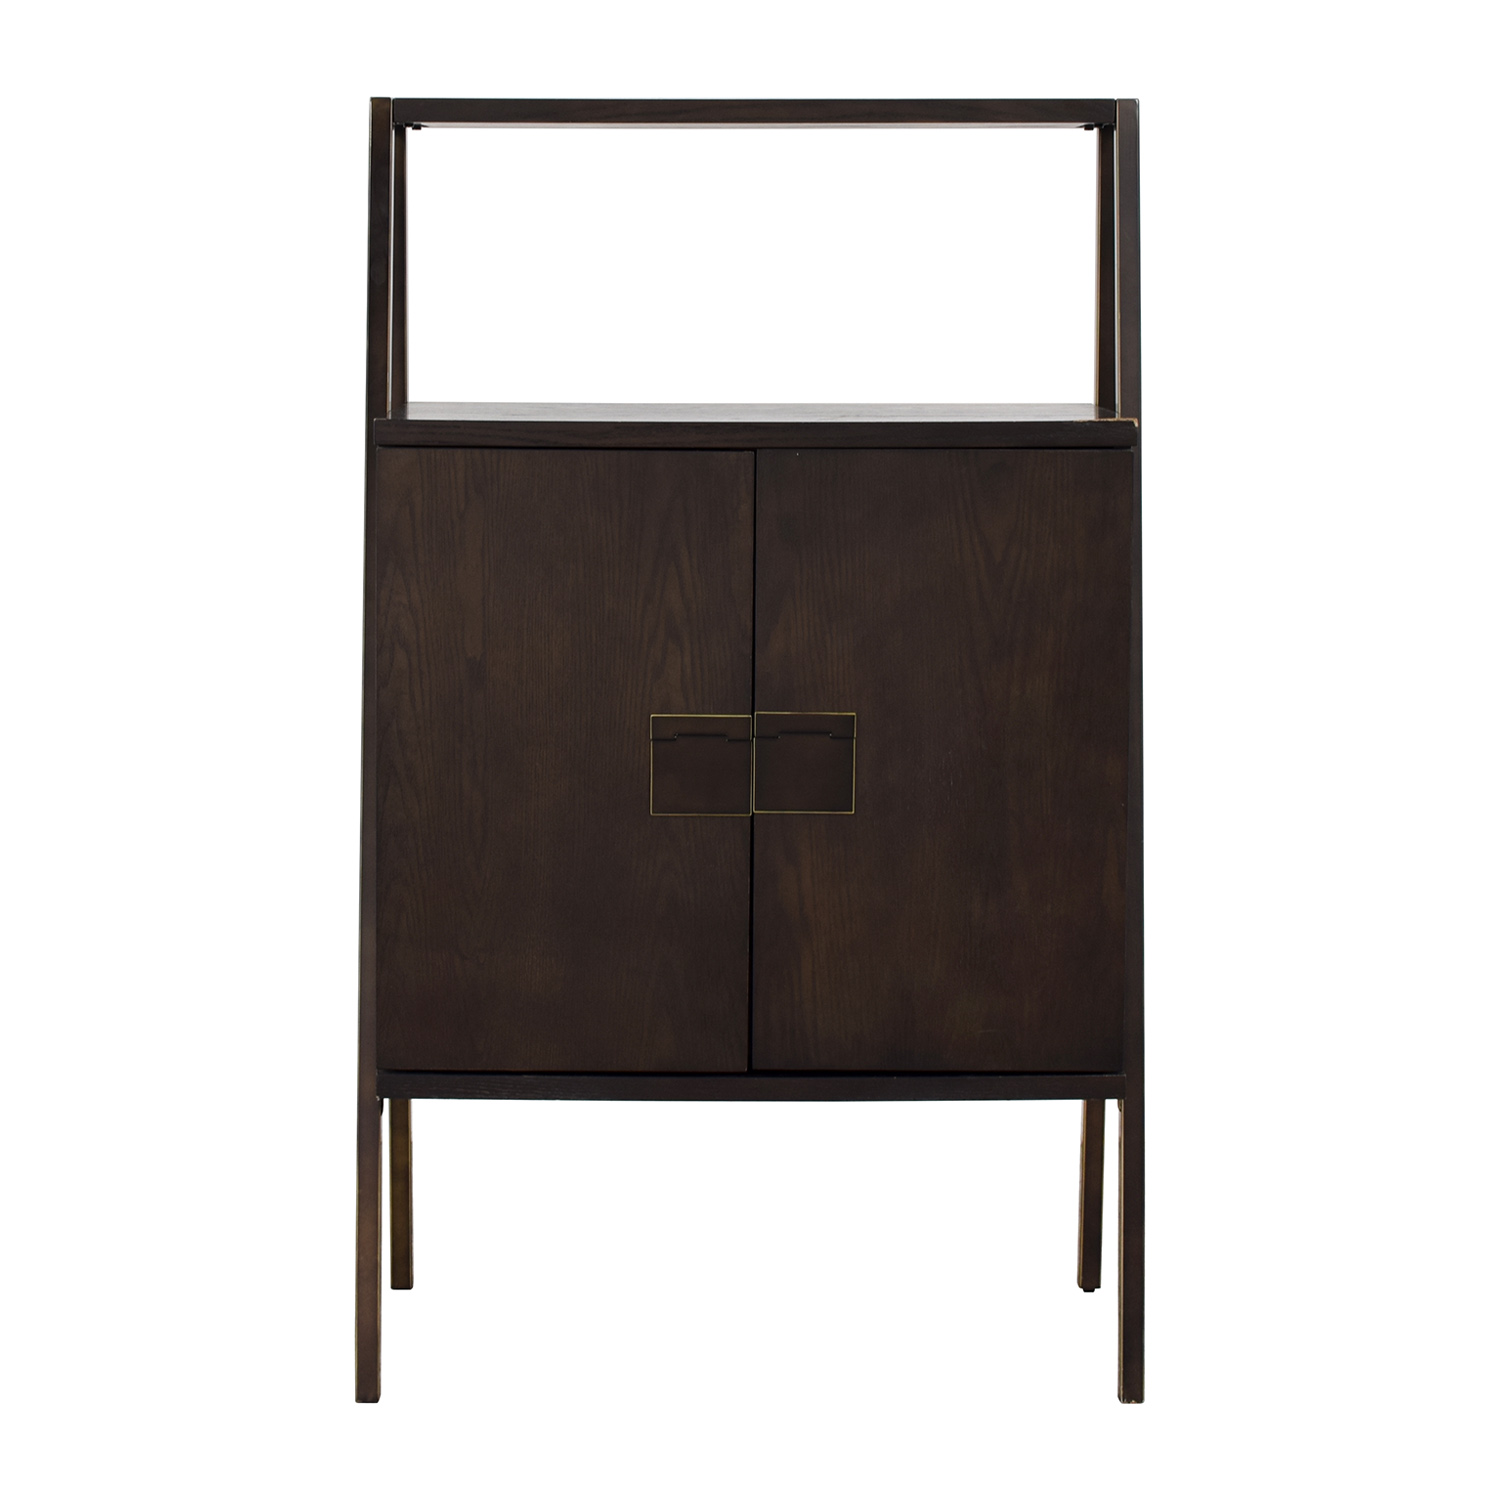 West Elm West Elm Wood Bar Cabinet for sale